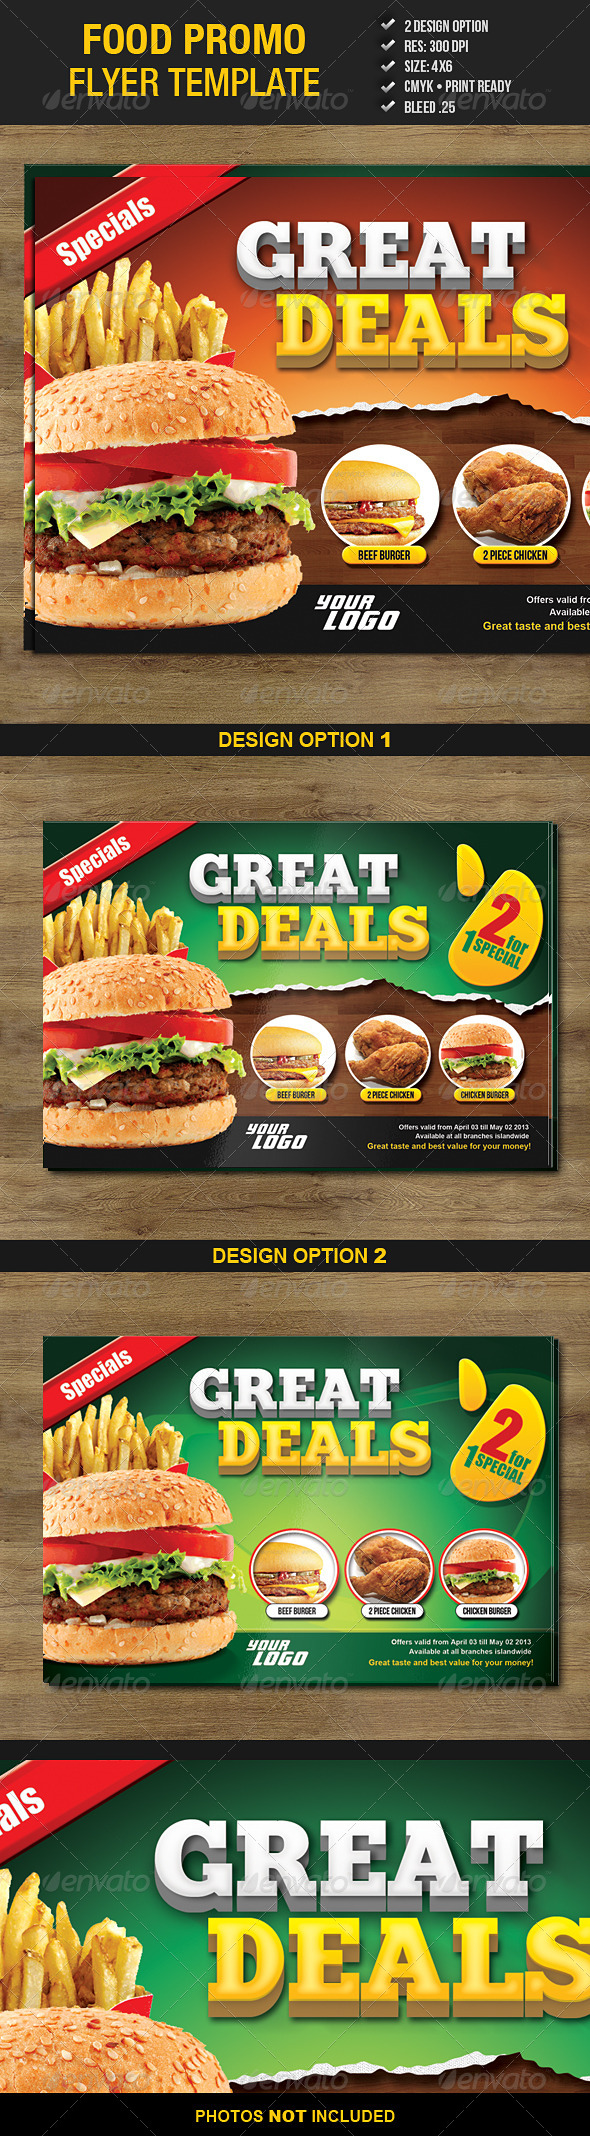 Food Promo Flyer Template Restaurant Flyers Pictures